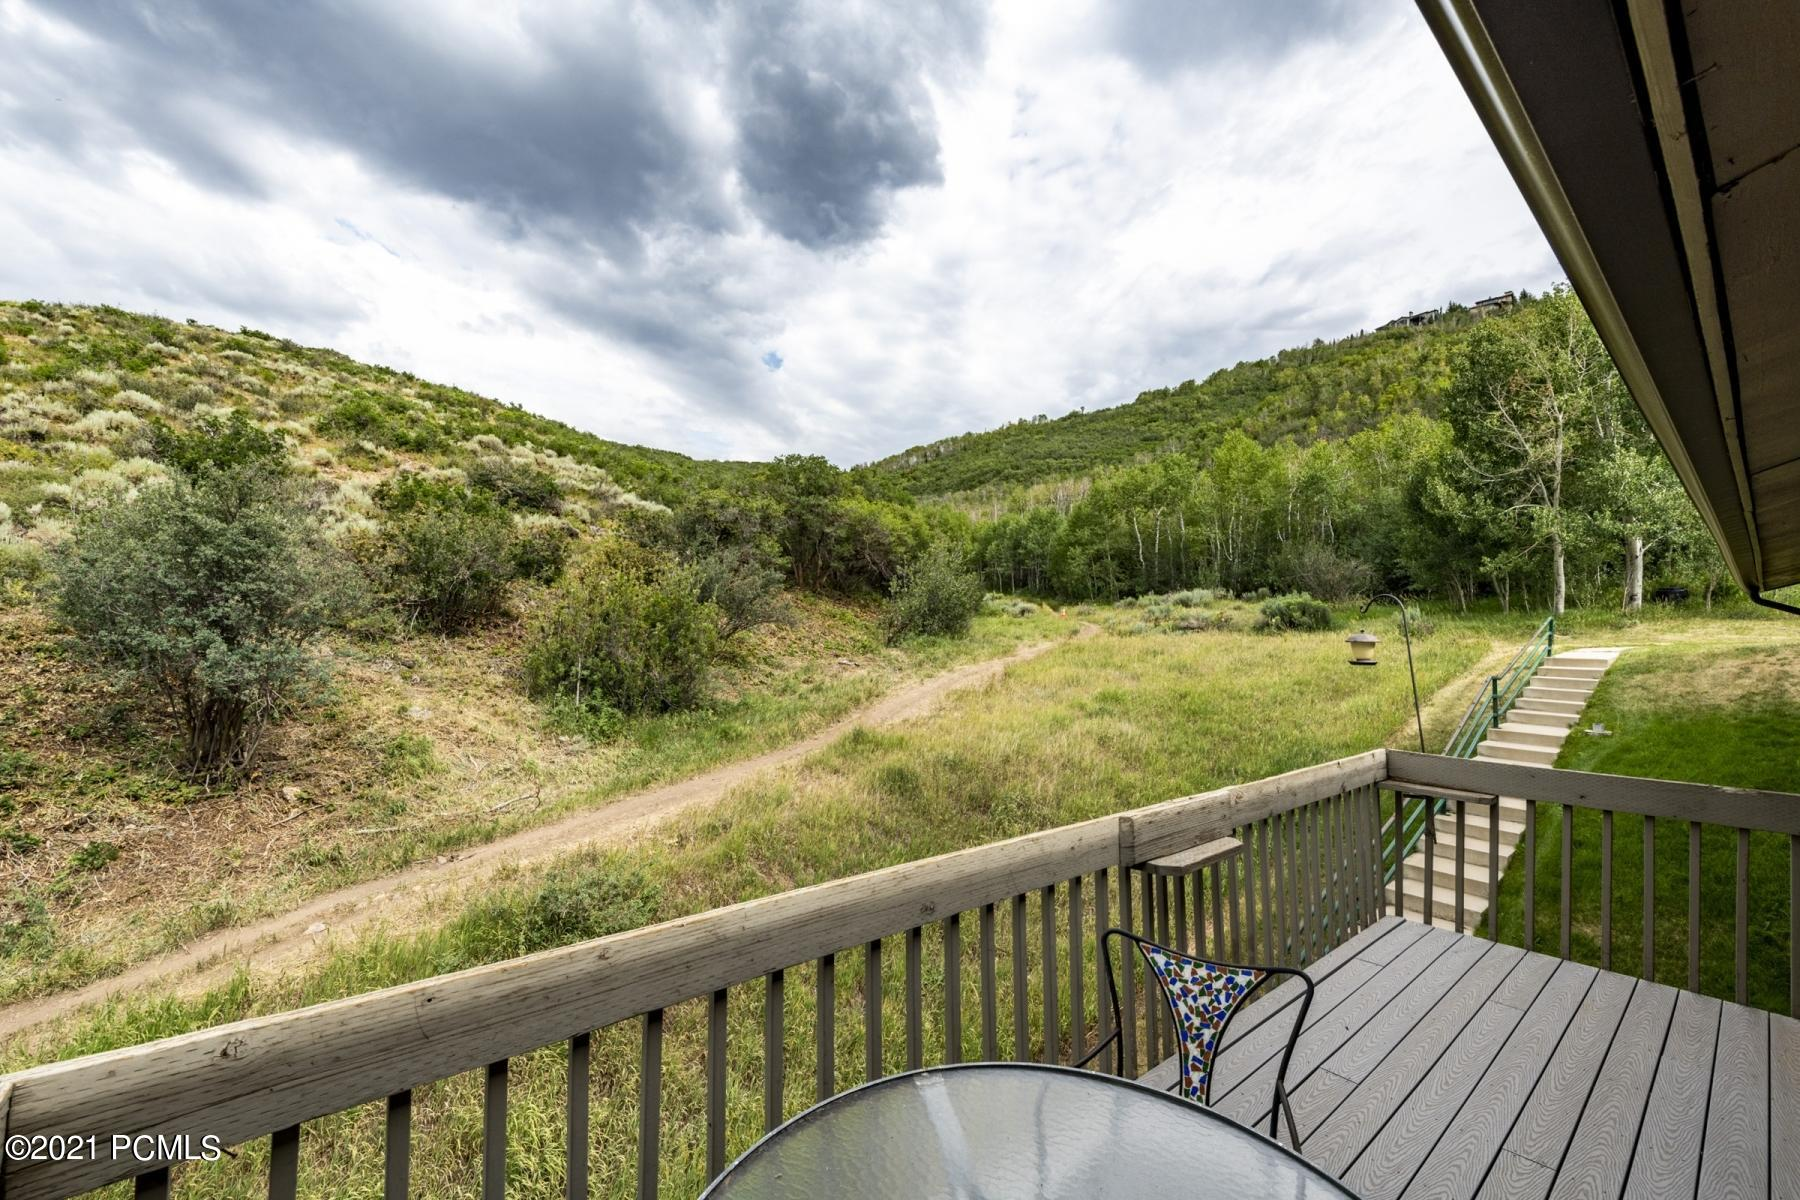 This cozy 2-bedroom Iron Horse condo is in Park City, Utah is located in the Prospector neighborhood and is central to everything in Park City. Top floor of the end of the last building and the only one with a deck. It faces open space and trails. Extremely private and quiet. Wood burning fireplace. 2-year old appliances.